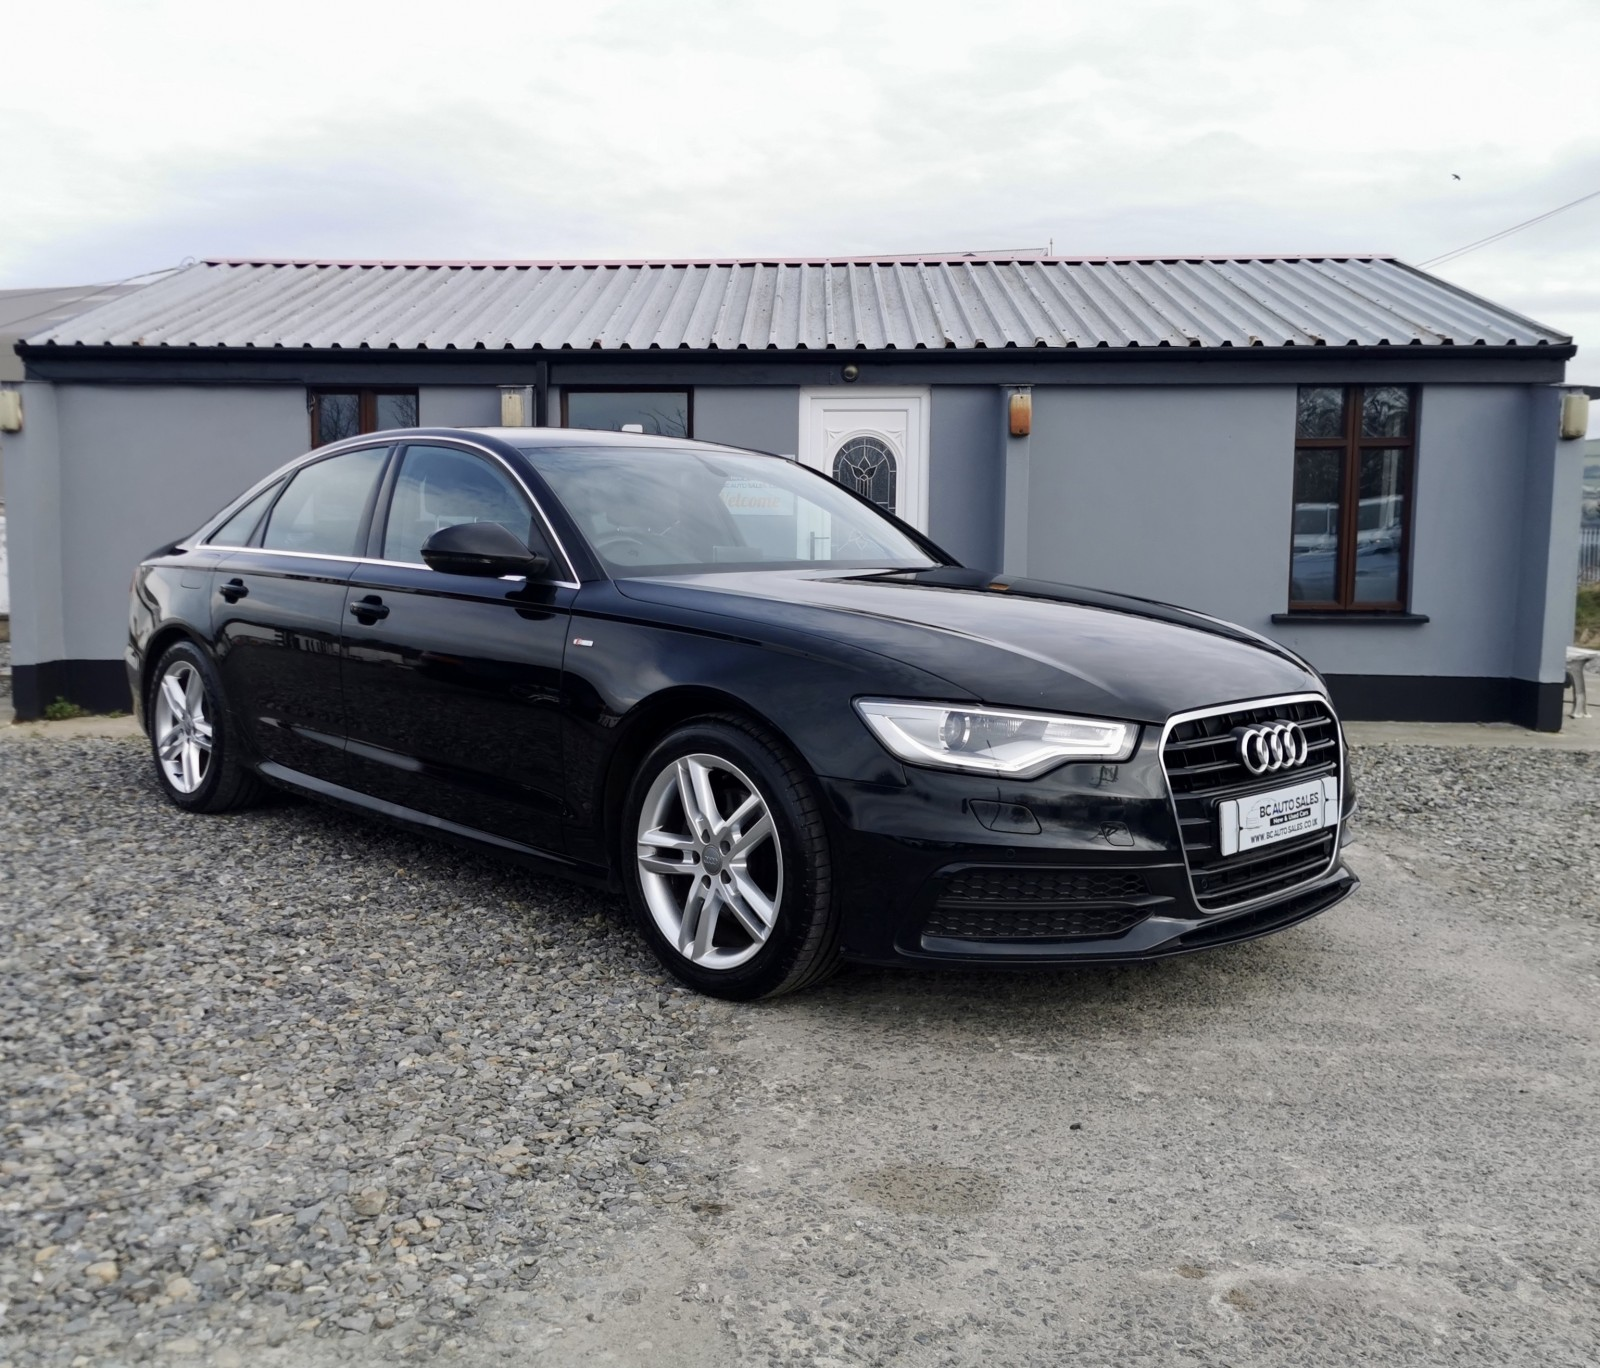 2014 Audi A6 TDI S LINE Diesel Manual – BC Autosales 17A Airfield Road, Eglinton, Londonderry BT47 3PZ, UK